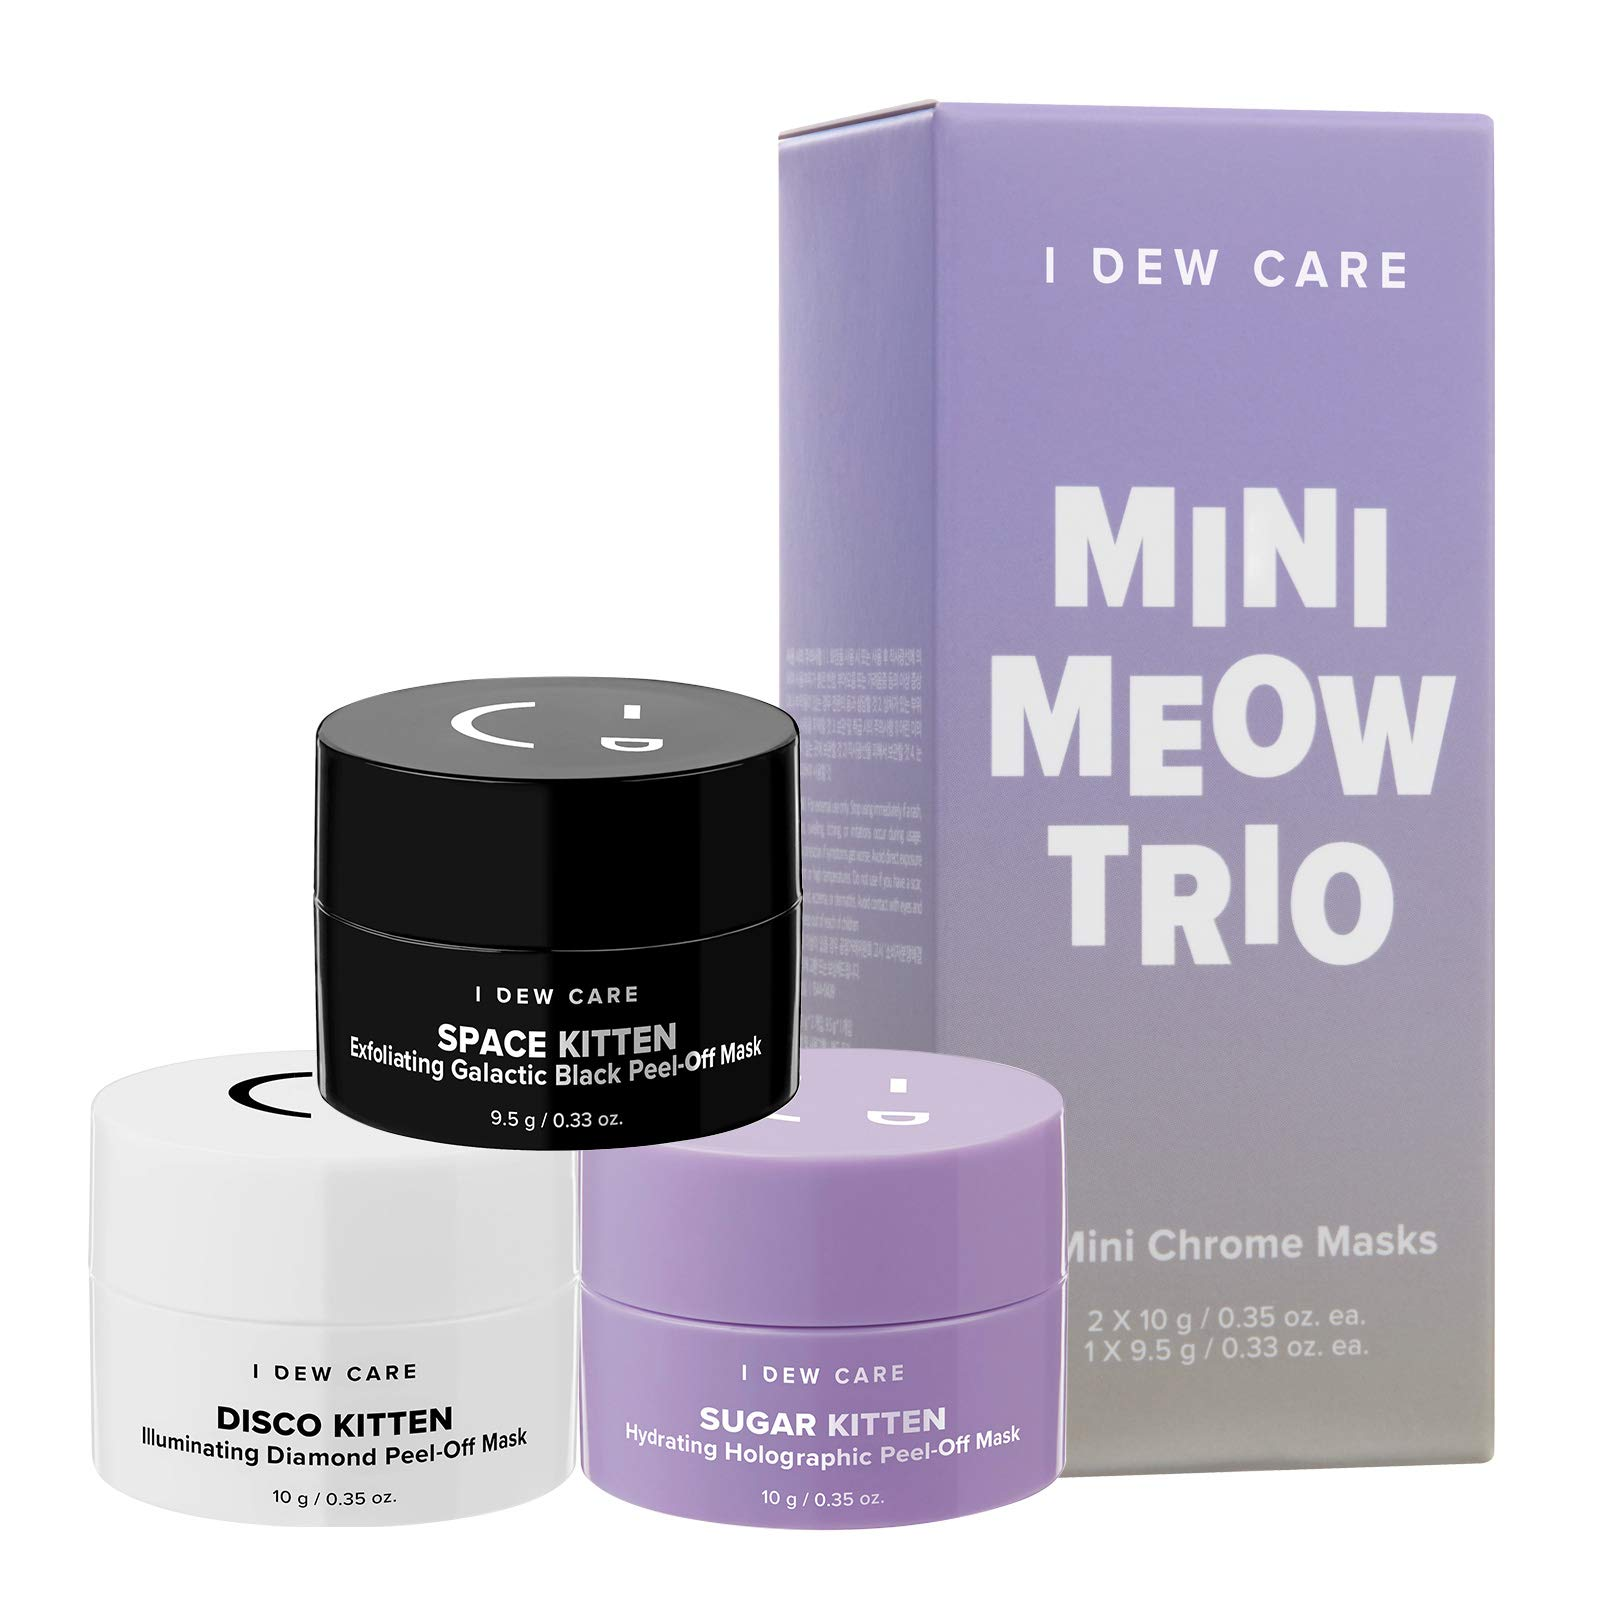 I DEW CARE Mini Meow Trio | Peel Off Face Mask Set: Hydrating Mask, Illuminating Mask, Exfoliating Mask | Korean Skincare, Facial Treatment, Cruelty-Free, Gluten-Free, Paraben-Free